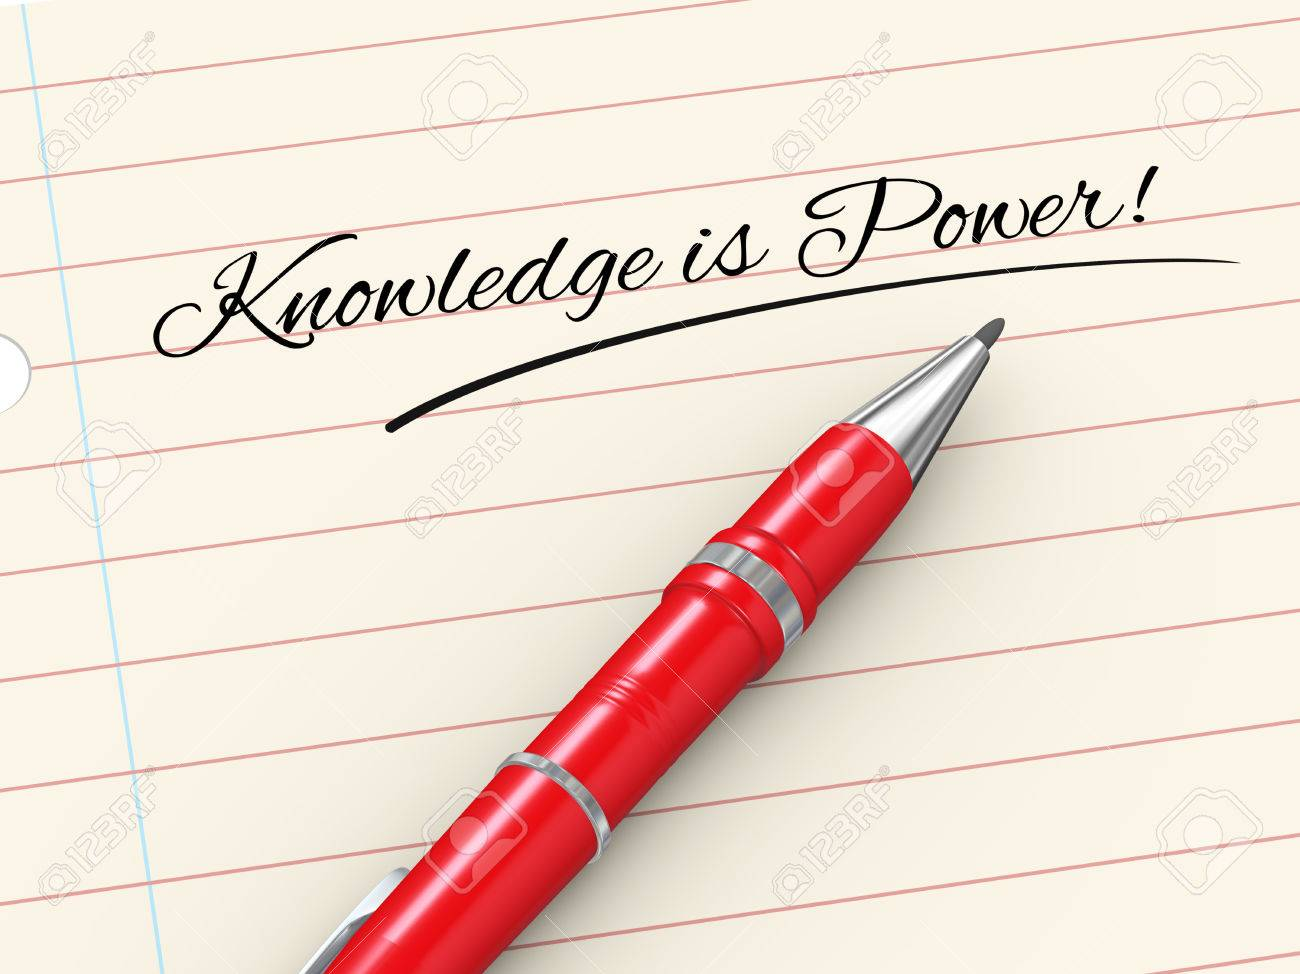 d render of pen on paper written knowledge is power stock photo 3d render of pen on paper written knowledge is power stock photo 23711521